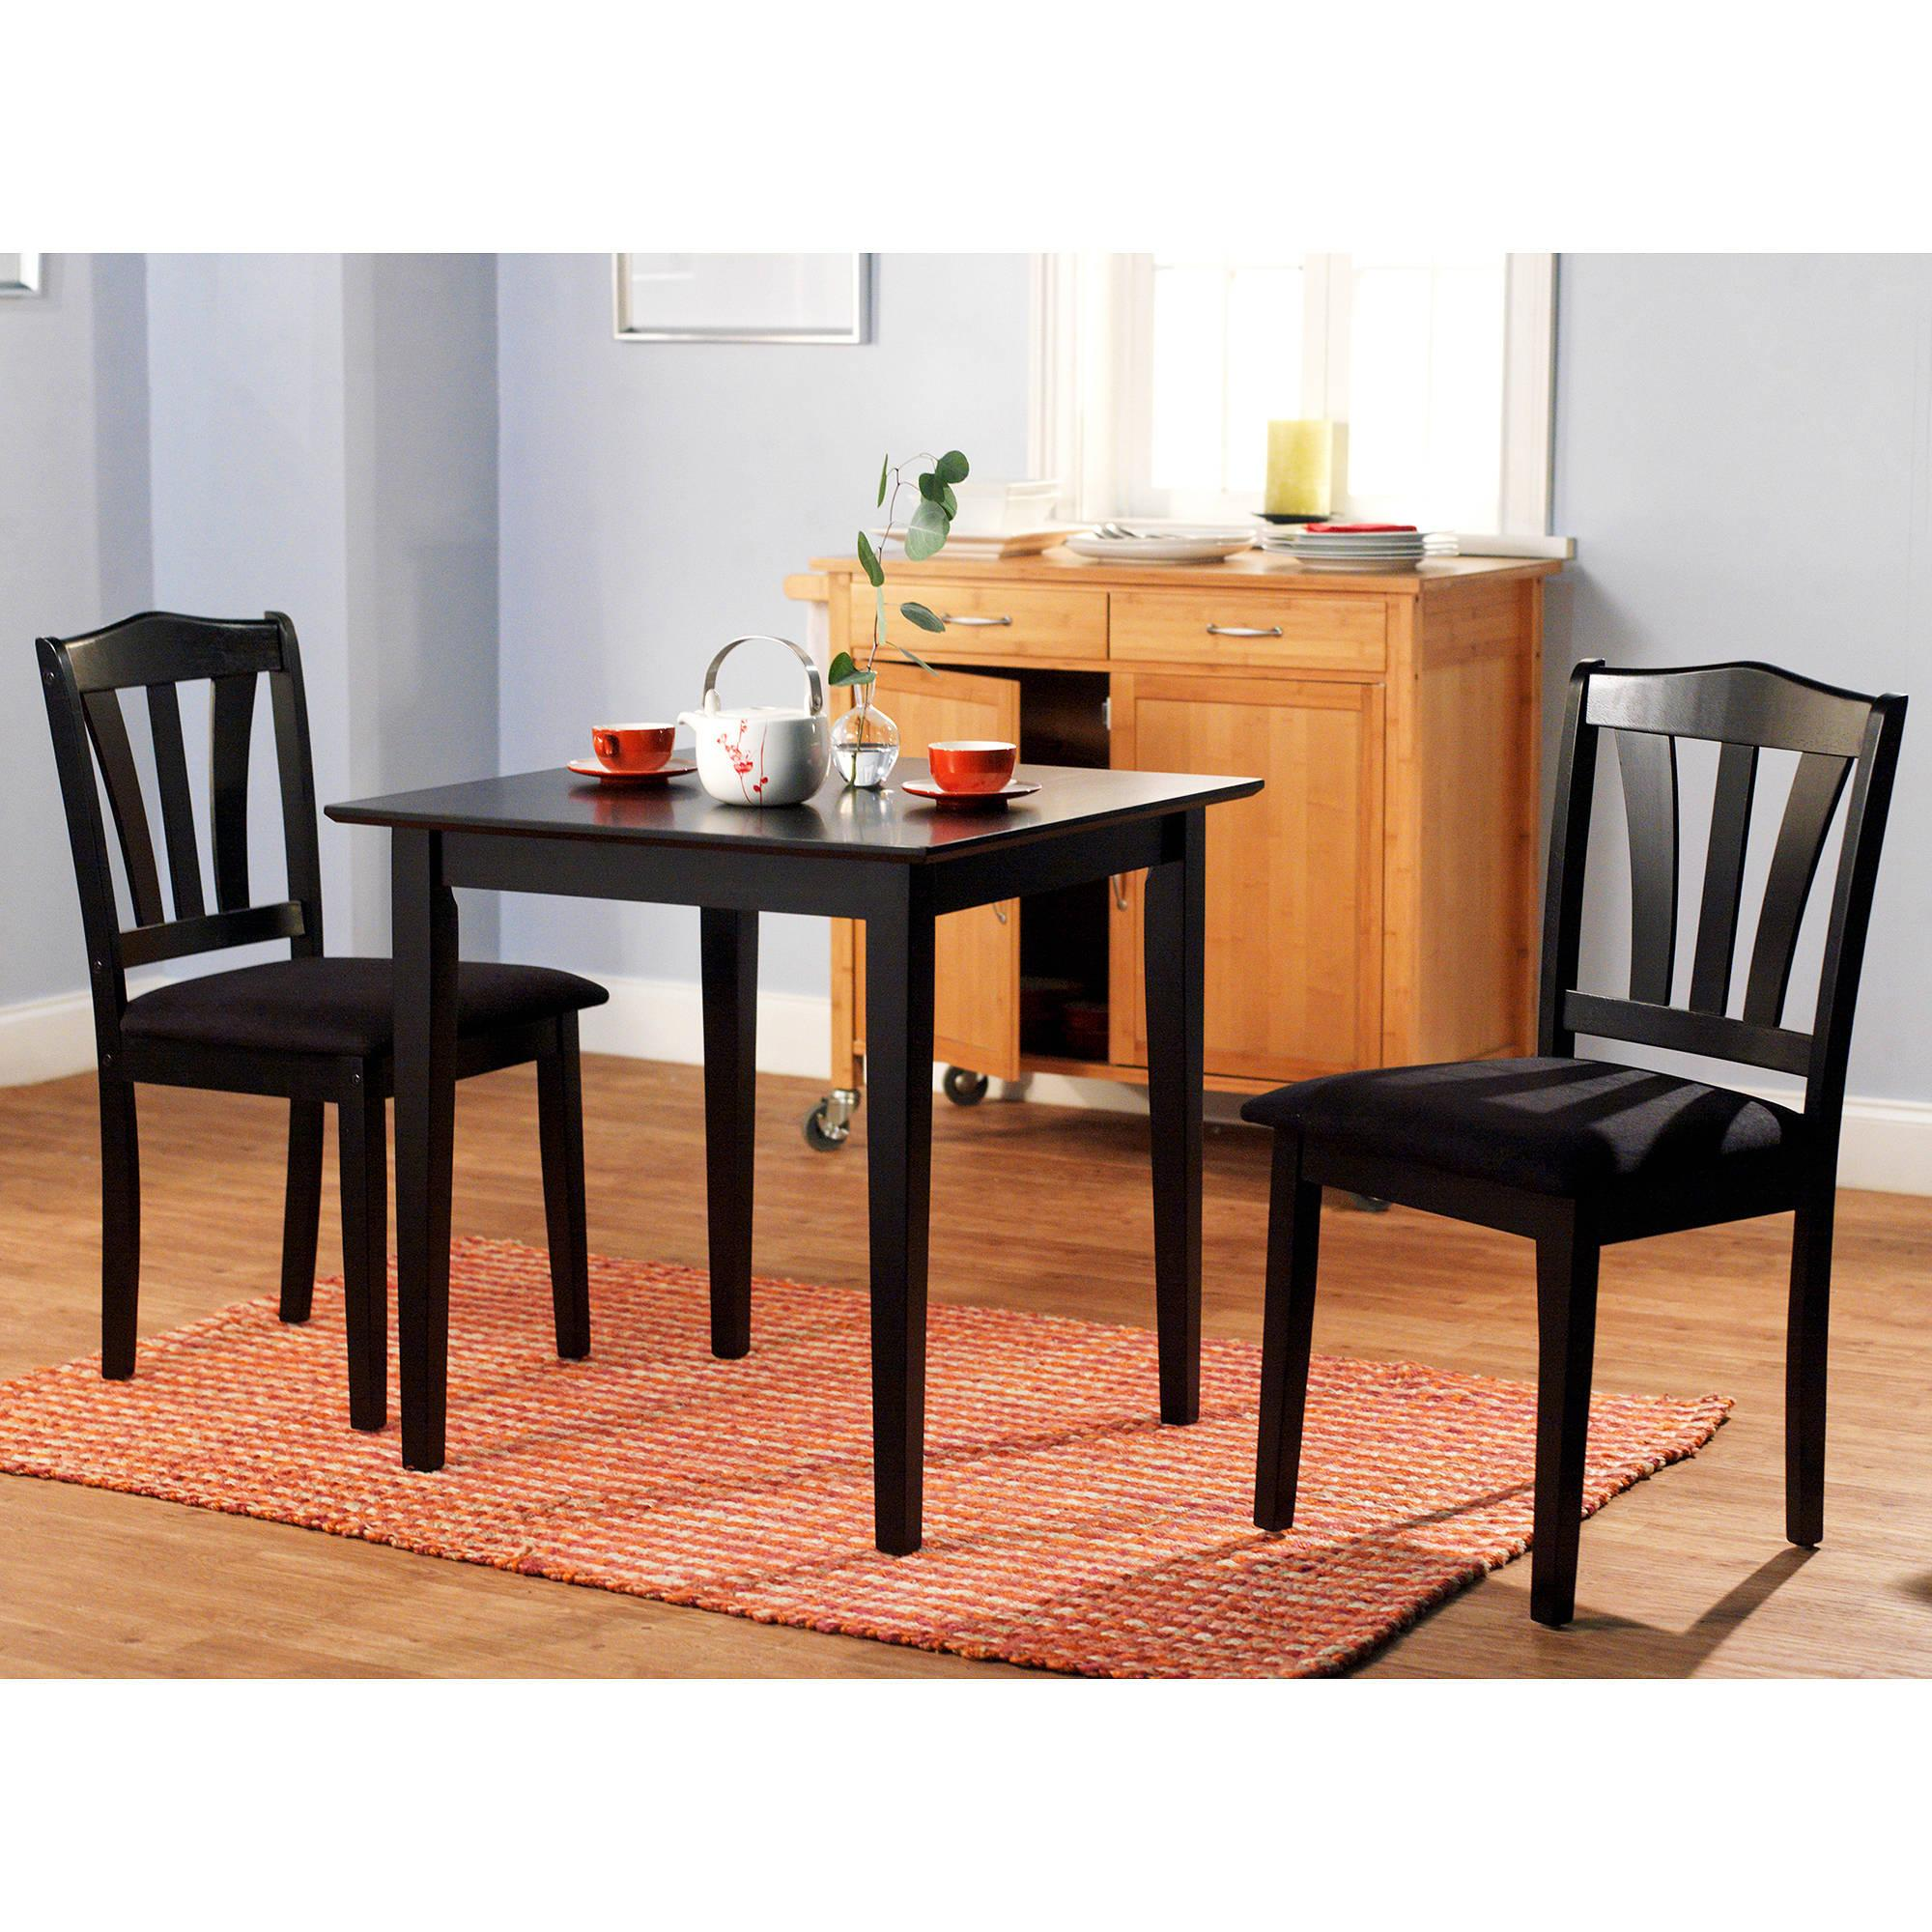 3 piece dining set table 2 chairs kitchen room wood for 2 piece furniture set